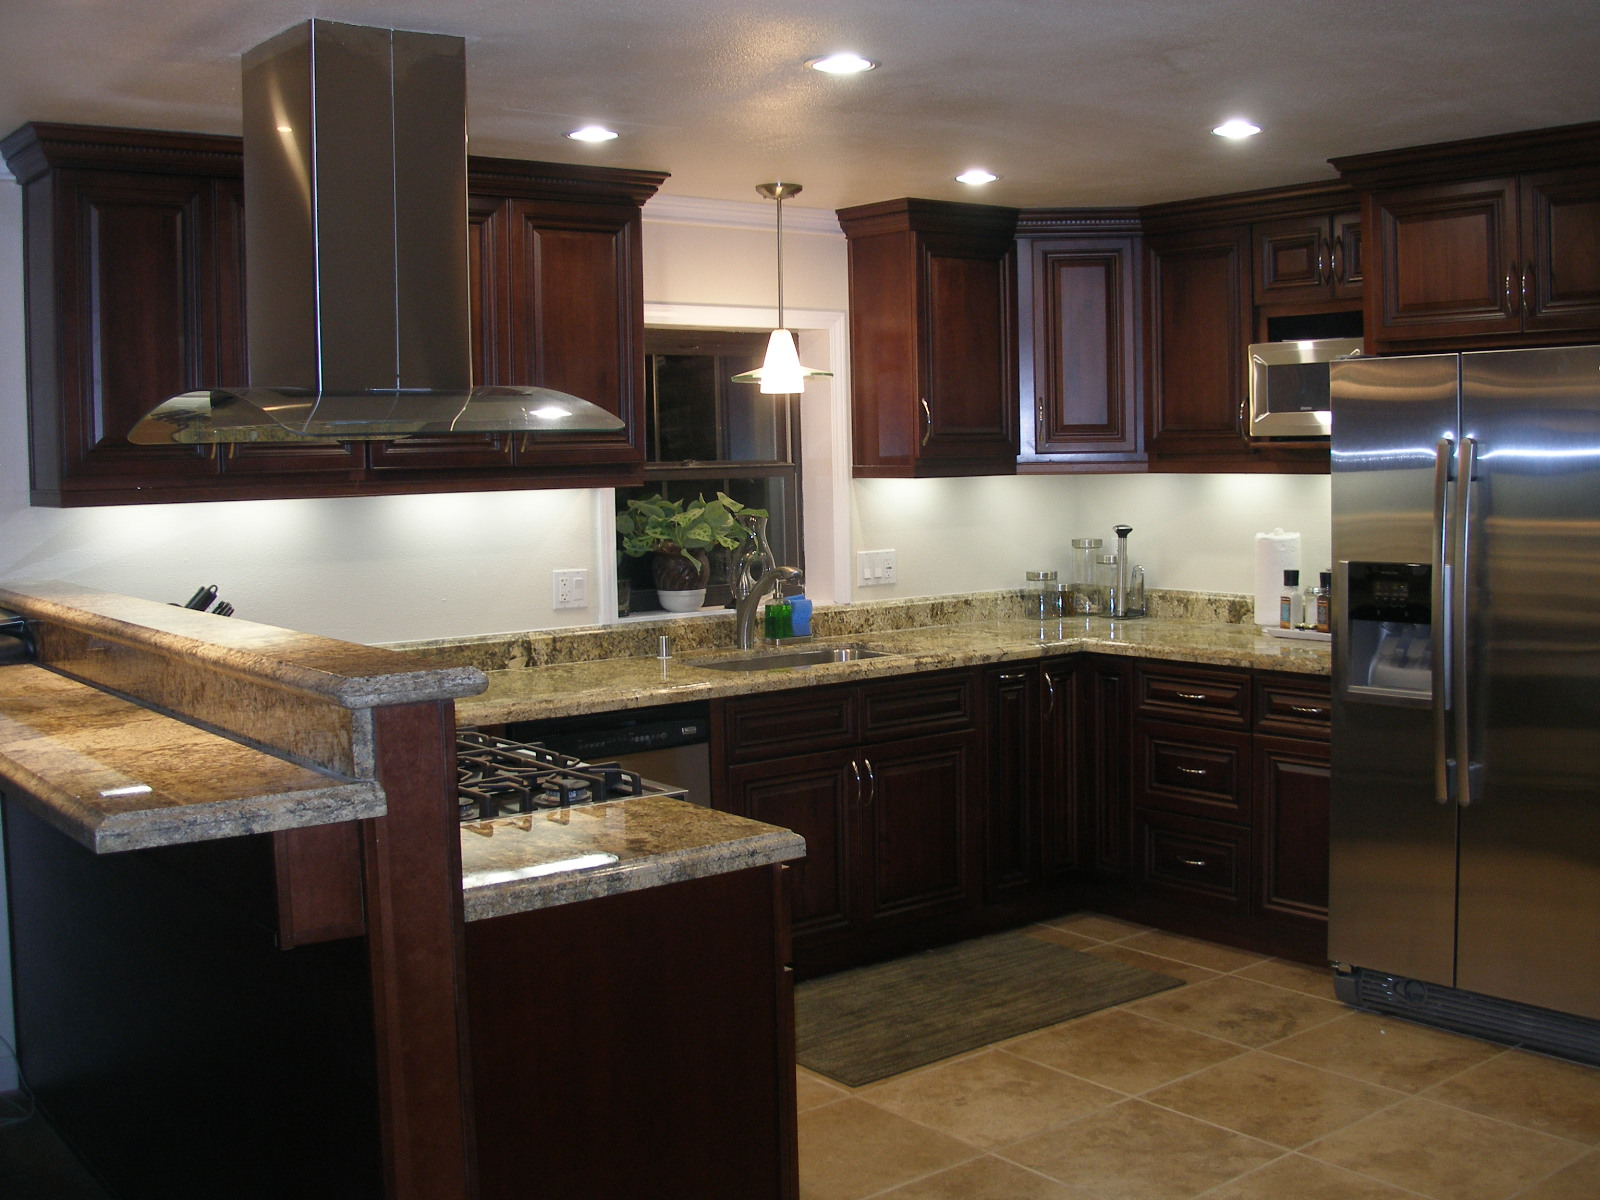 Image gallery kitchen redesign How to redesign your kitchen